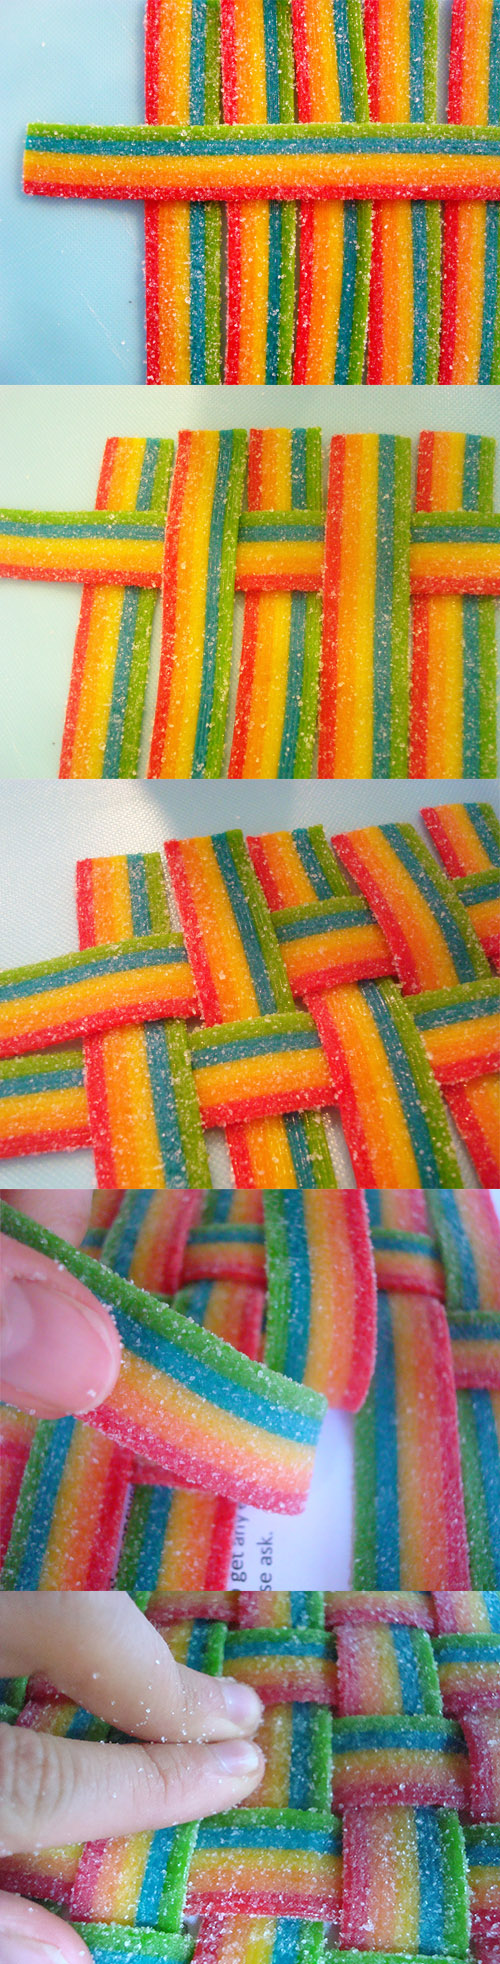 Weaving a rainbow